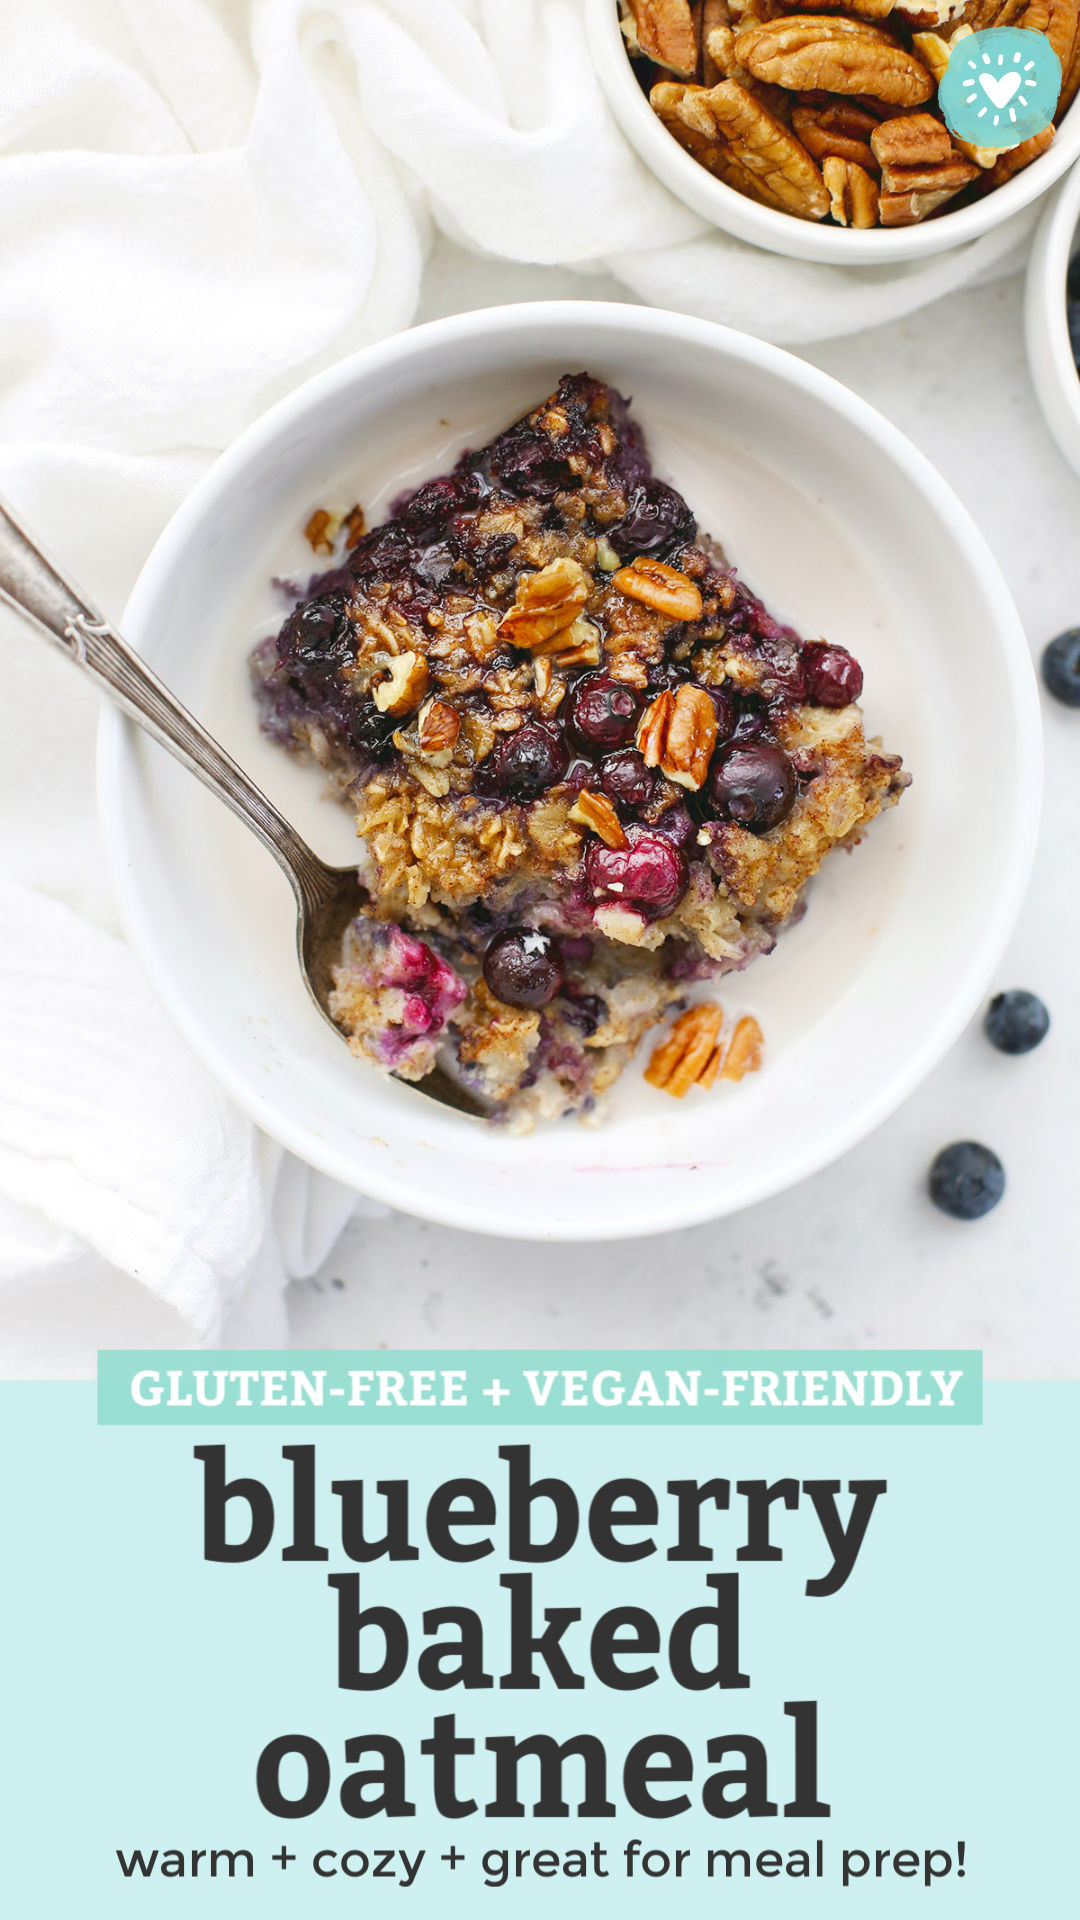 "Overhead view of a bowl of blueberry baked oatmeal with almond milk on a white background with text overlay that reads ""Gluten-Free + Vegan-Friendly Blueberry Baked Oatmeal. Warm + Cozy + Great for Meal Prep!"""